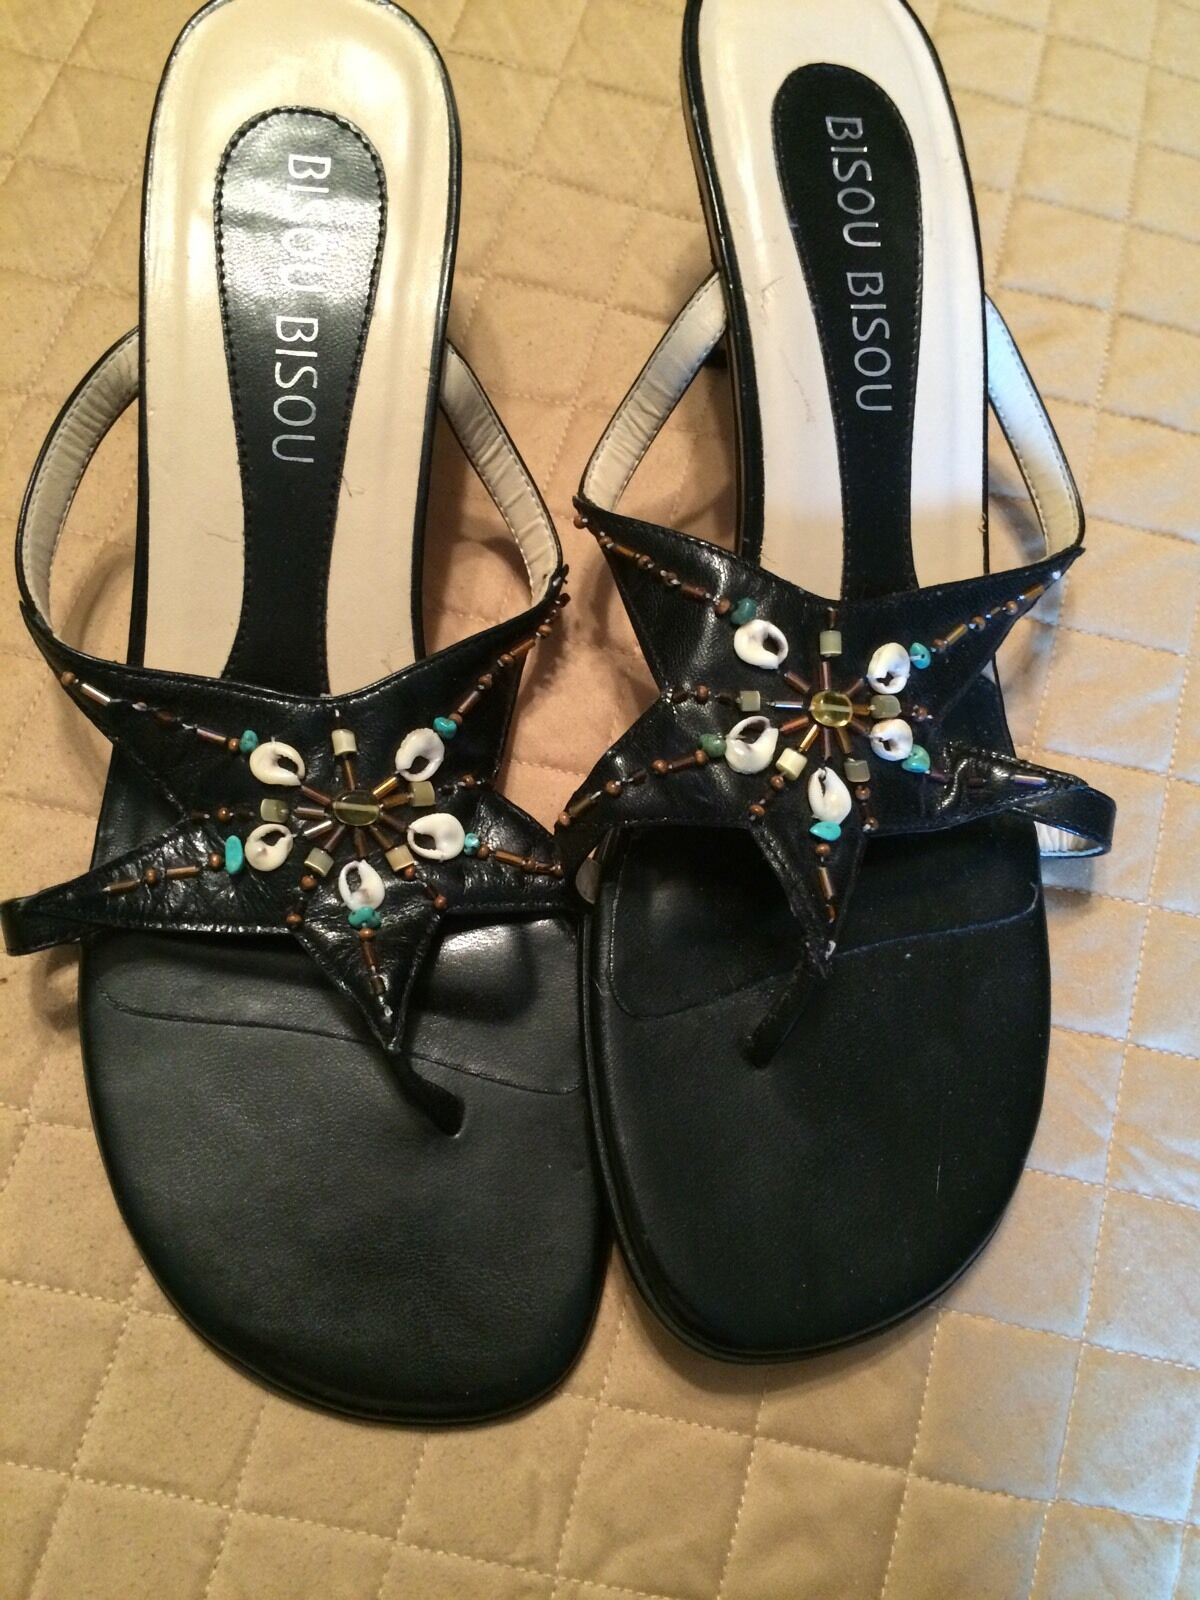 Ladies Sandals Bisou Bisou 8-1/2 Heel Beads, Black, Leather, Med Heel 8-1/2 960e26